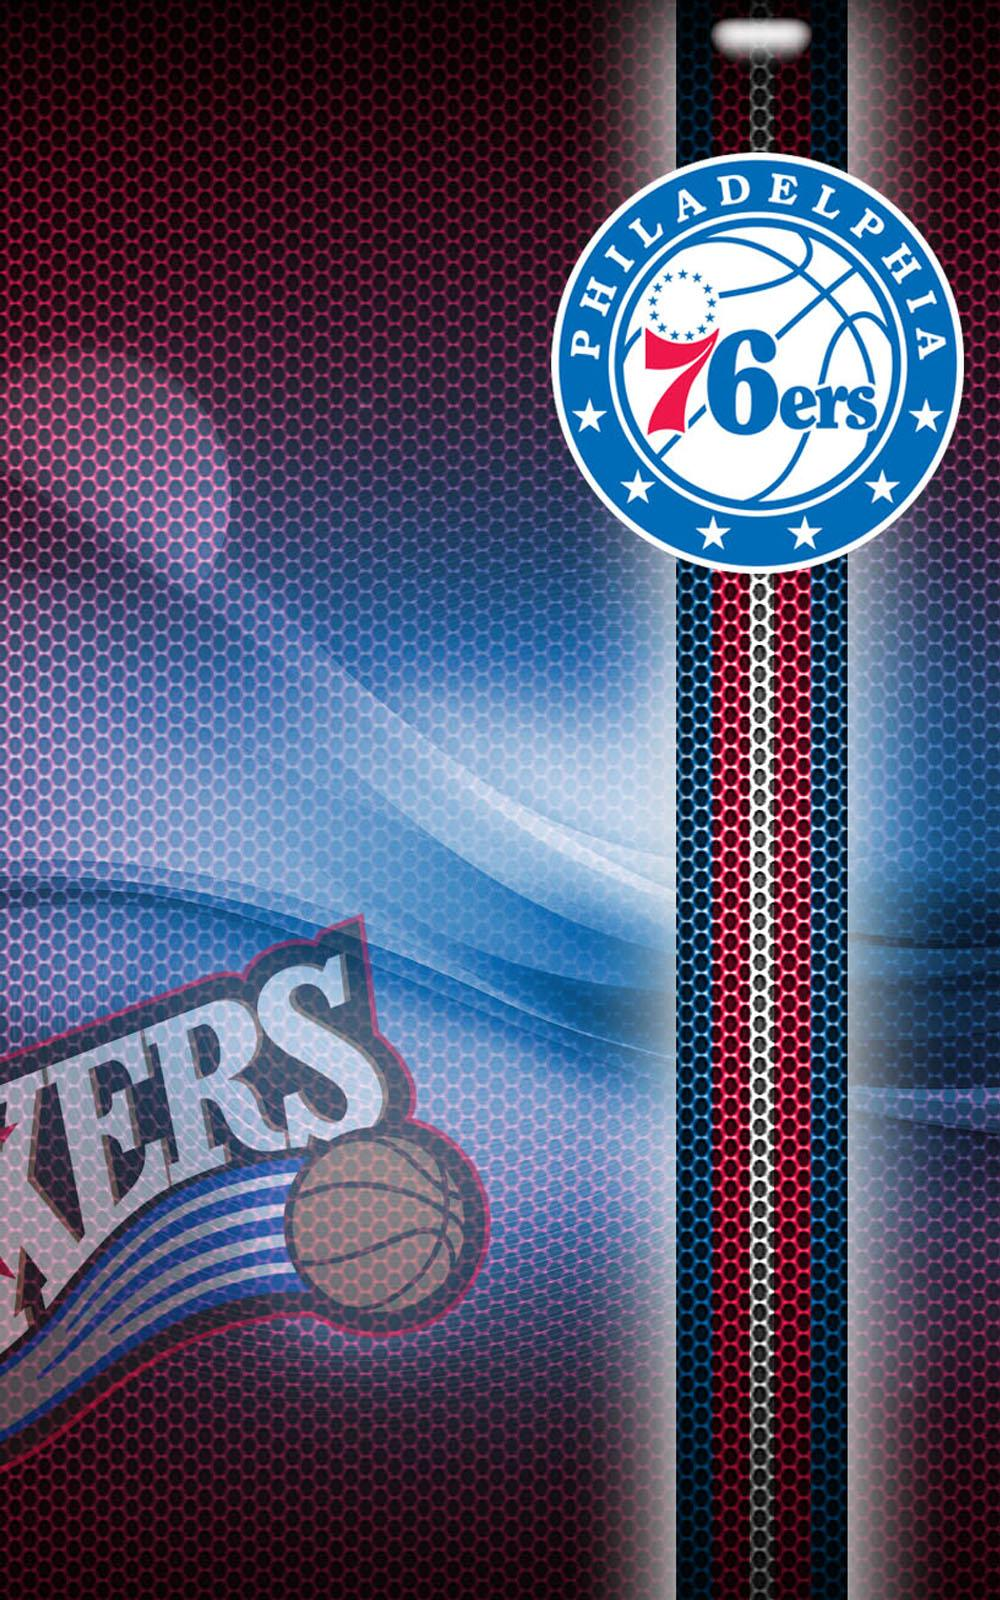 Philadelphia 76ers Wallpapers and Backgrounds Image